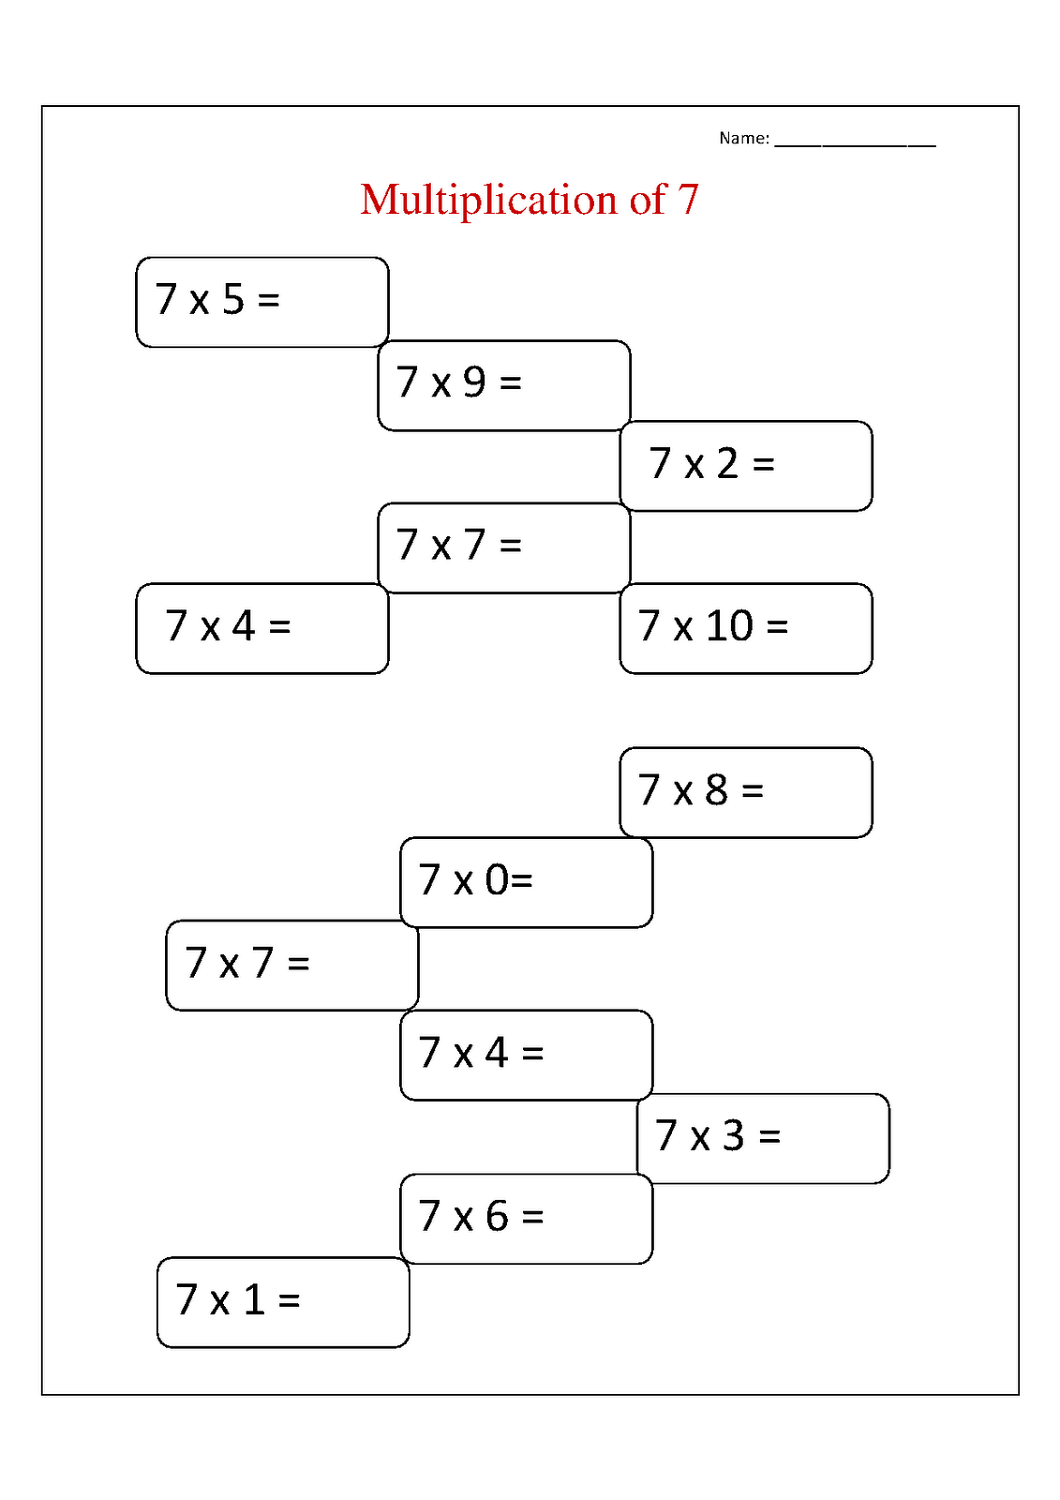 Add Times Tables Worksheet 7